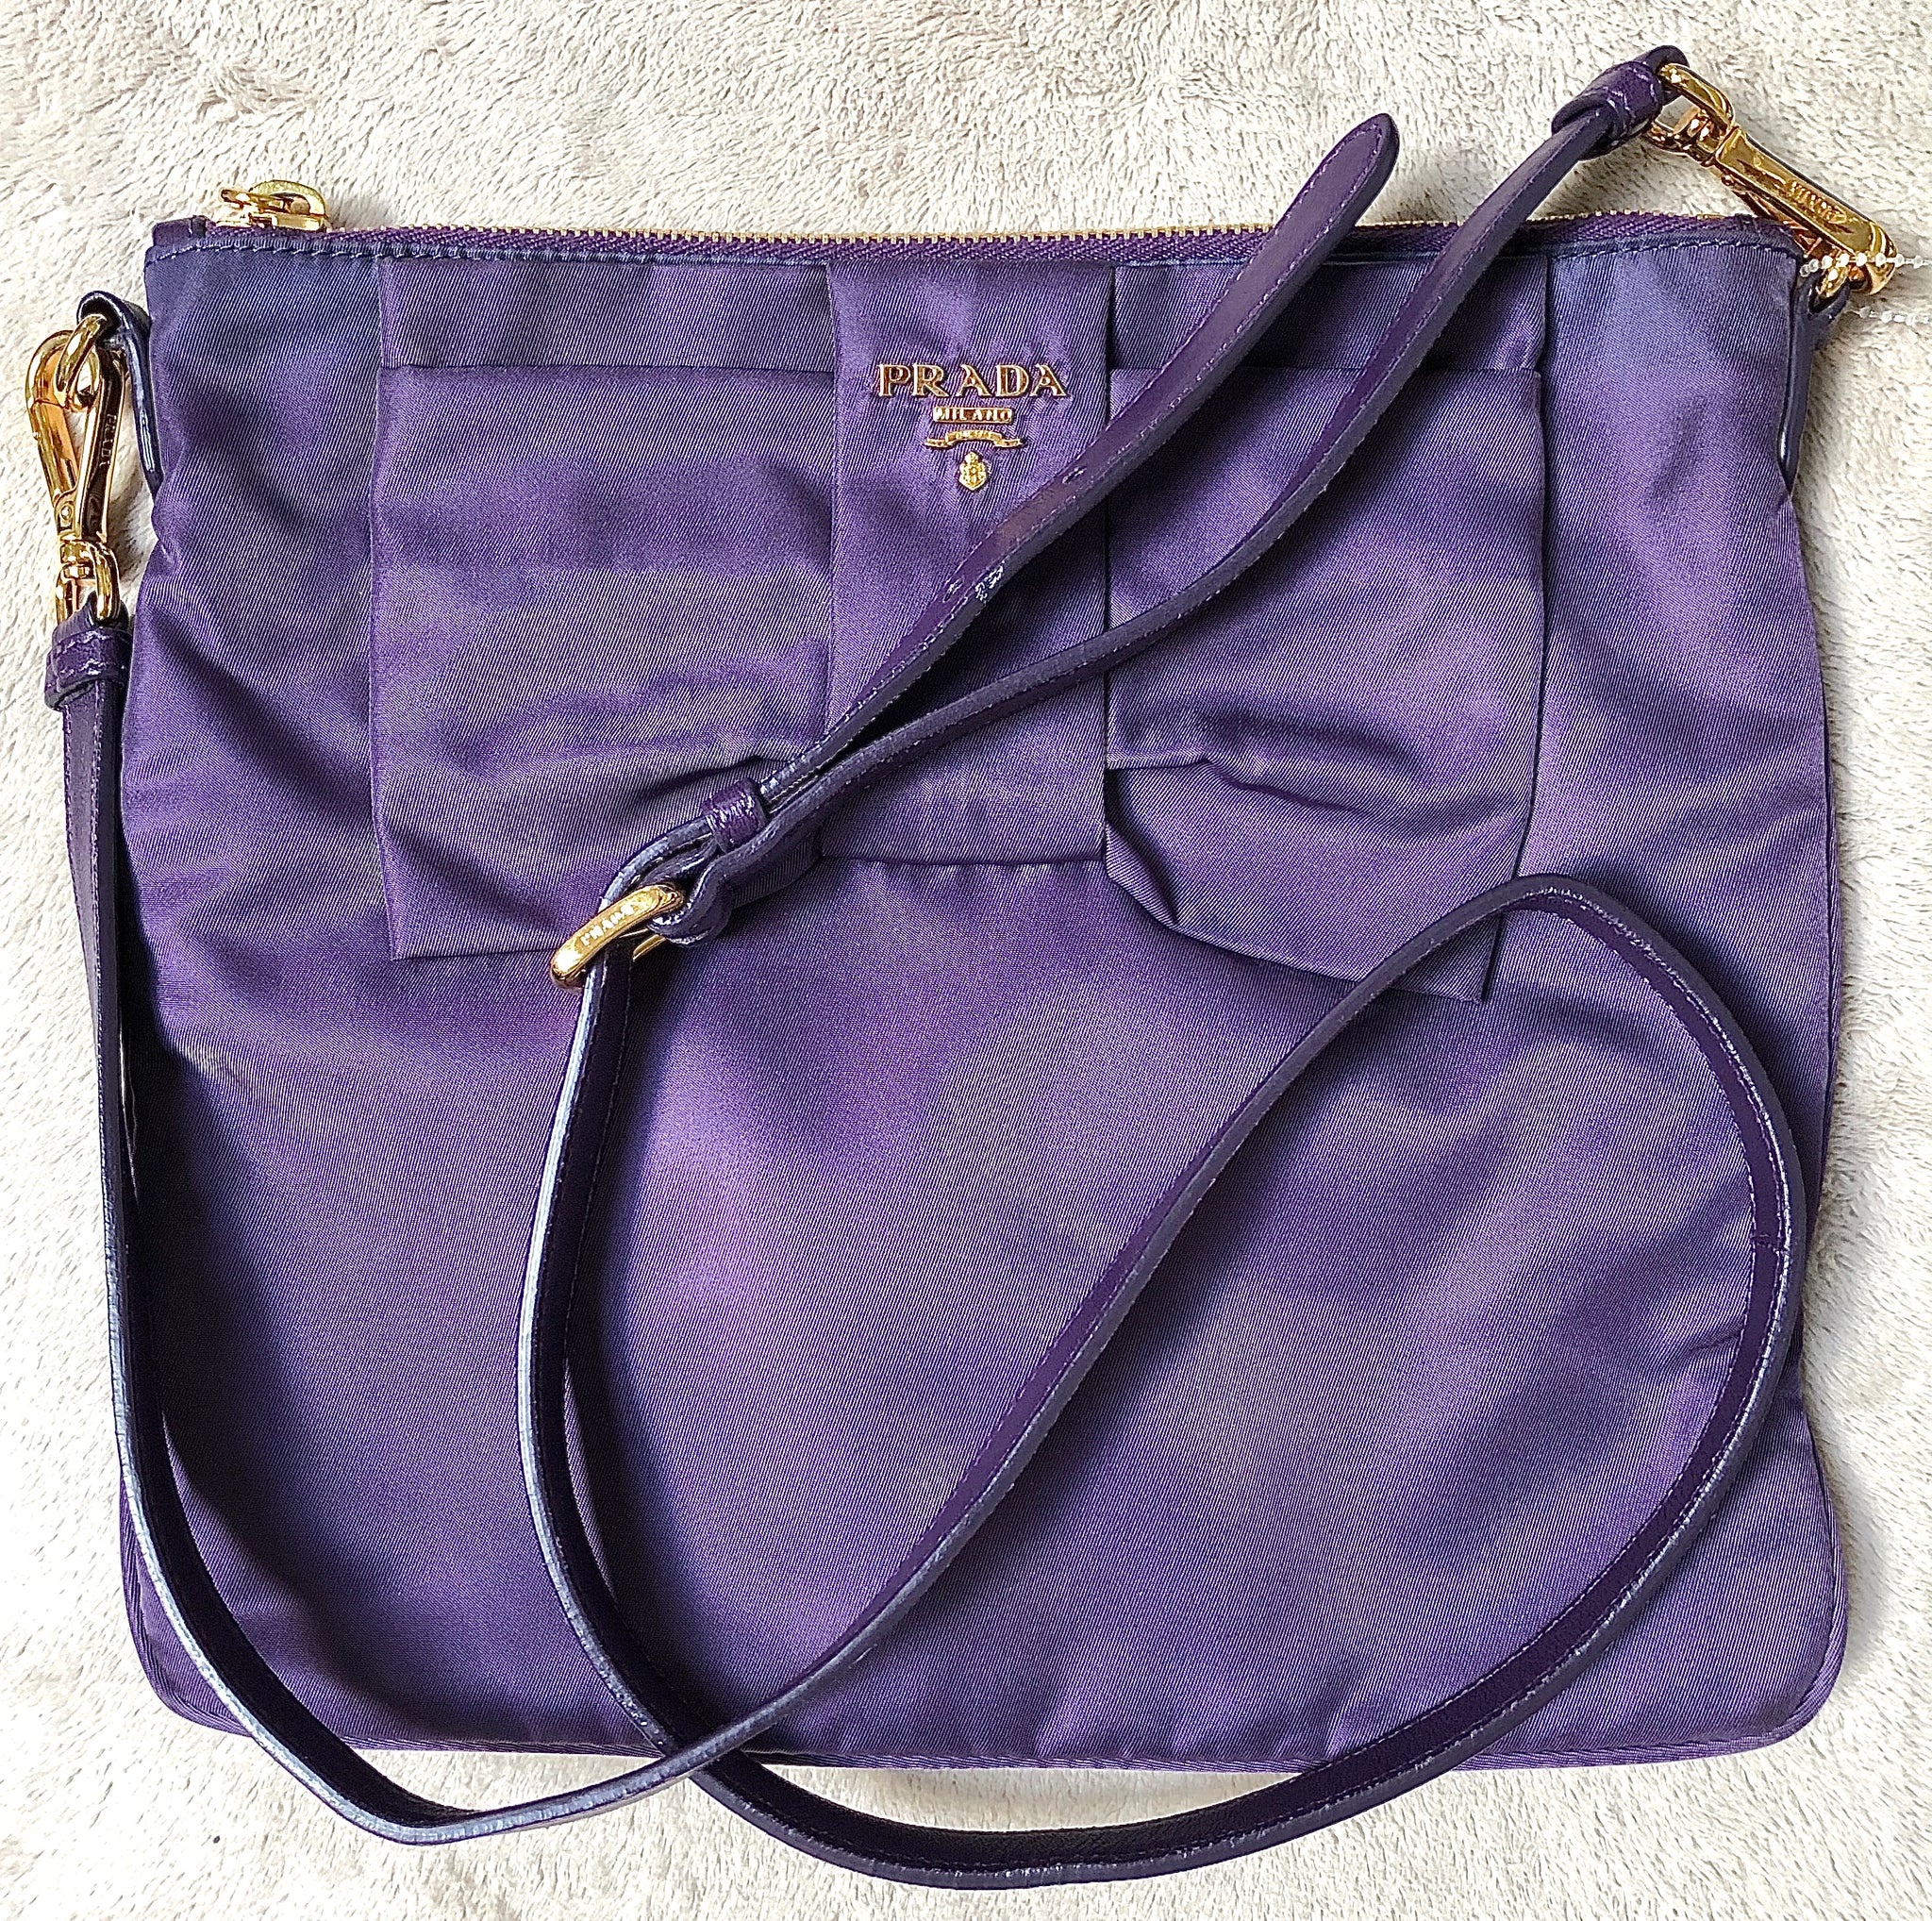 Prada Purple Women's Handbag